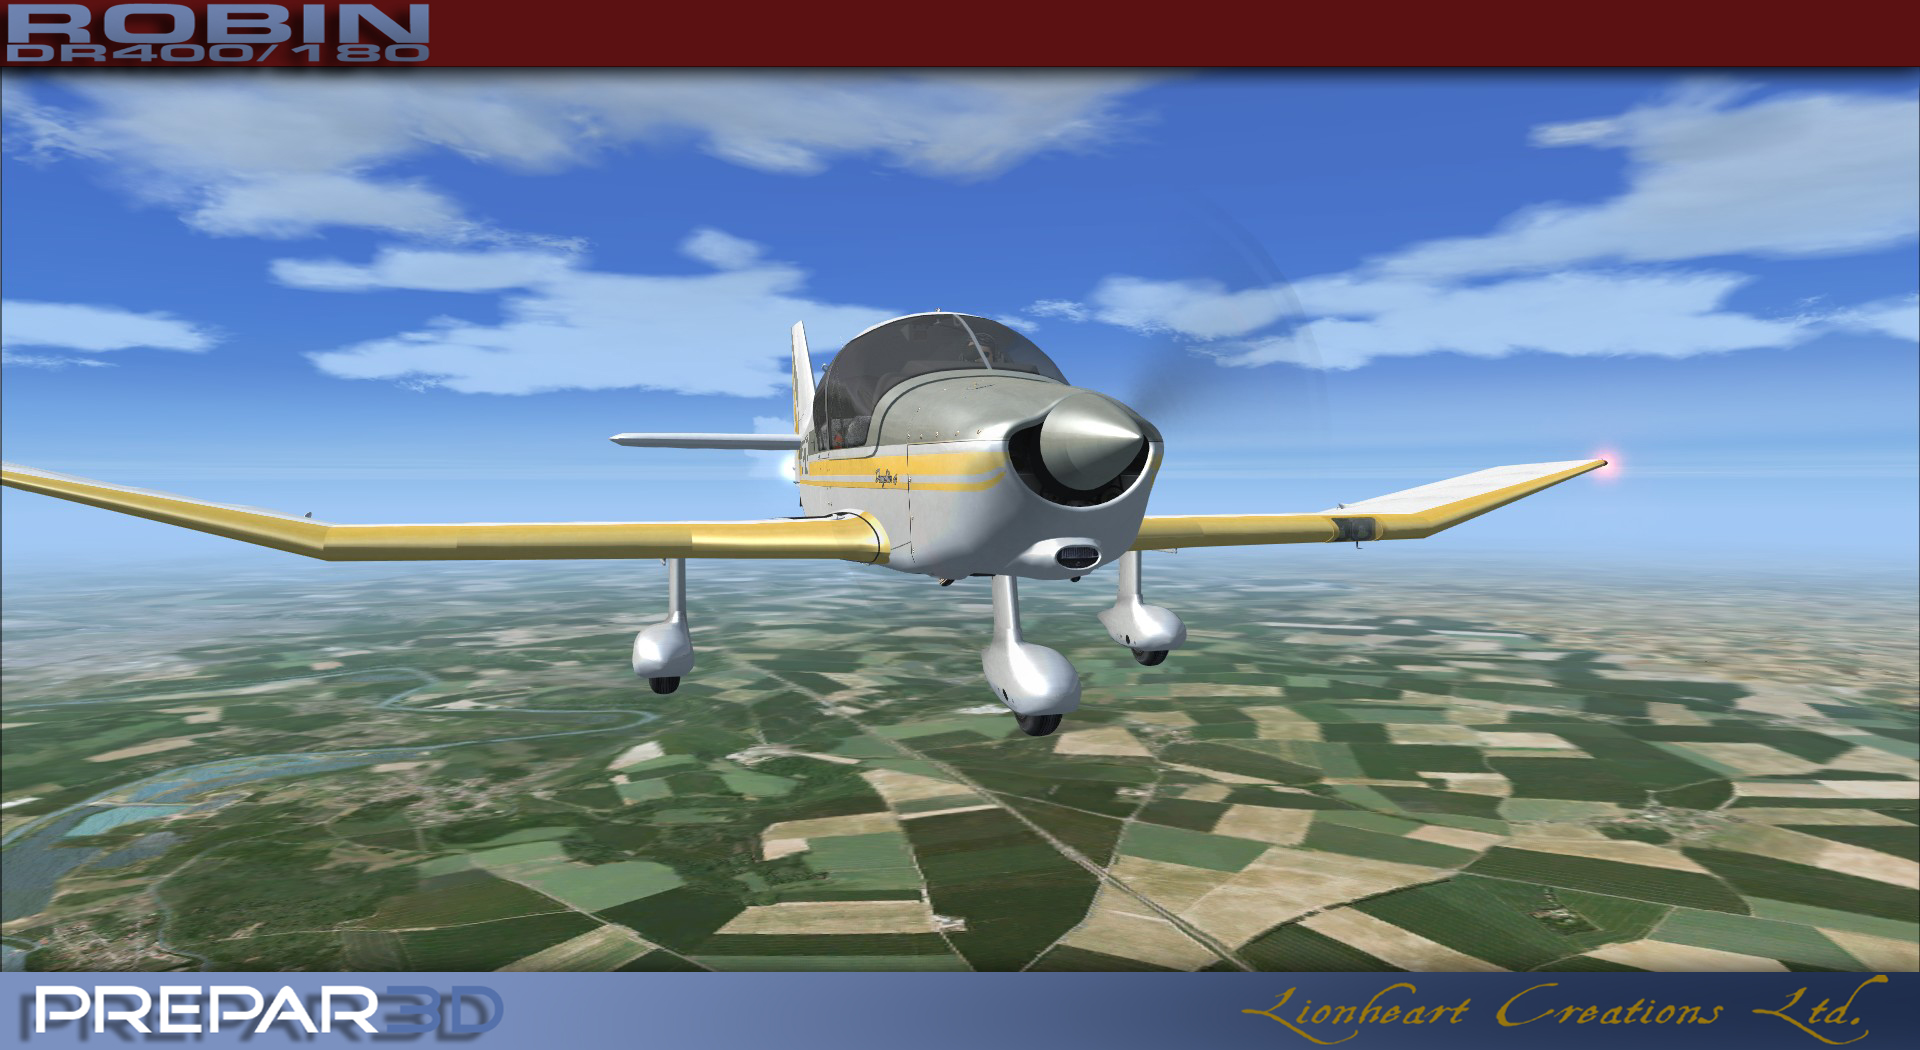 Robin DR400 by Lionheart Creations